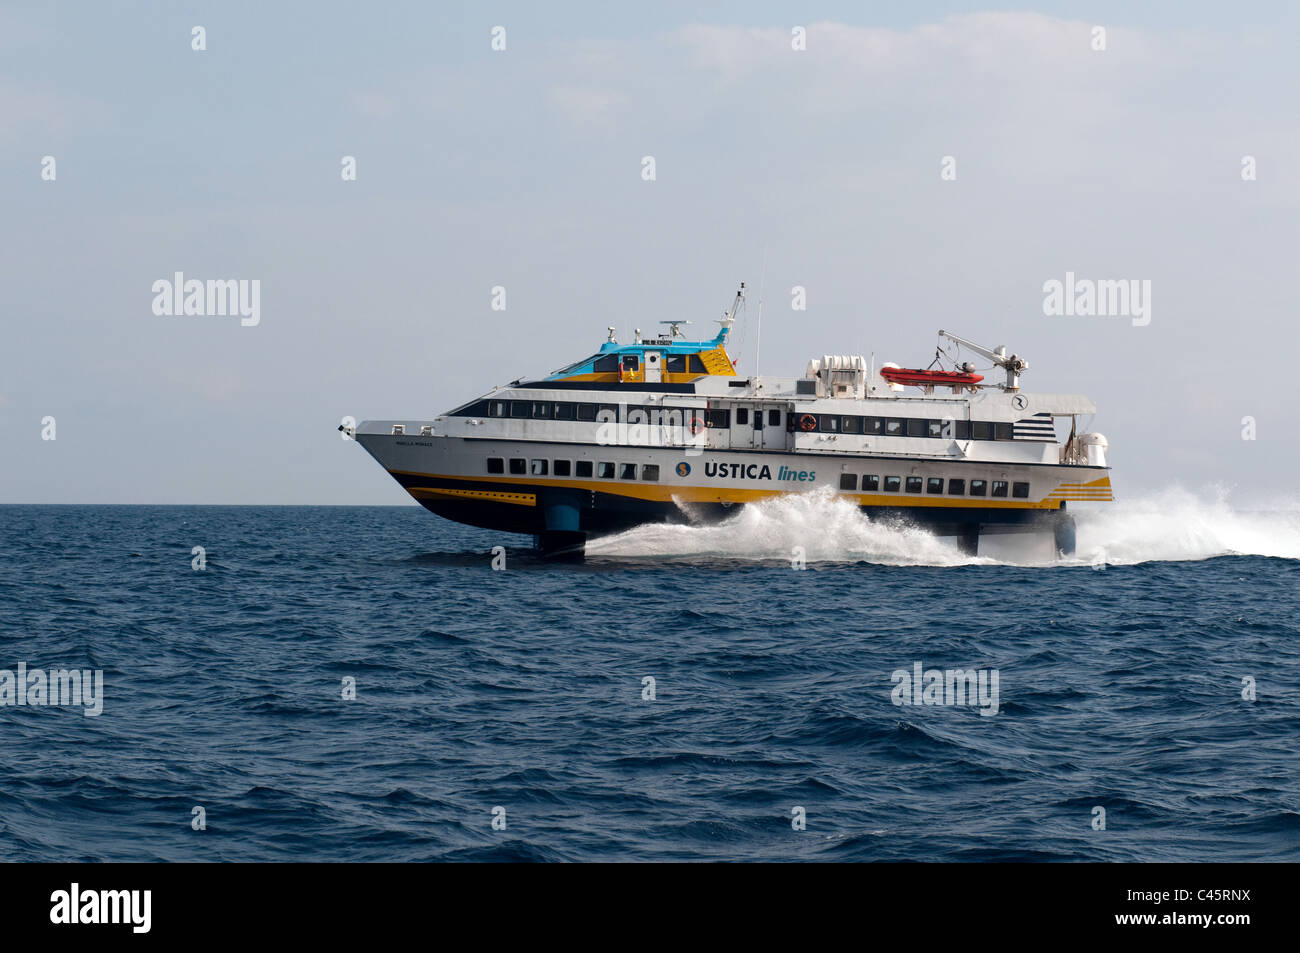 Hydrofoil Ships Stock Photos & Hydrofoil Ships Stock Images